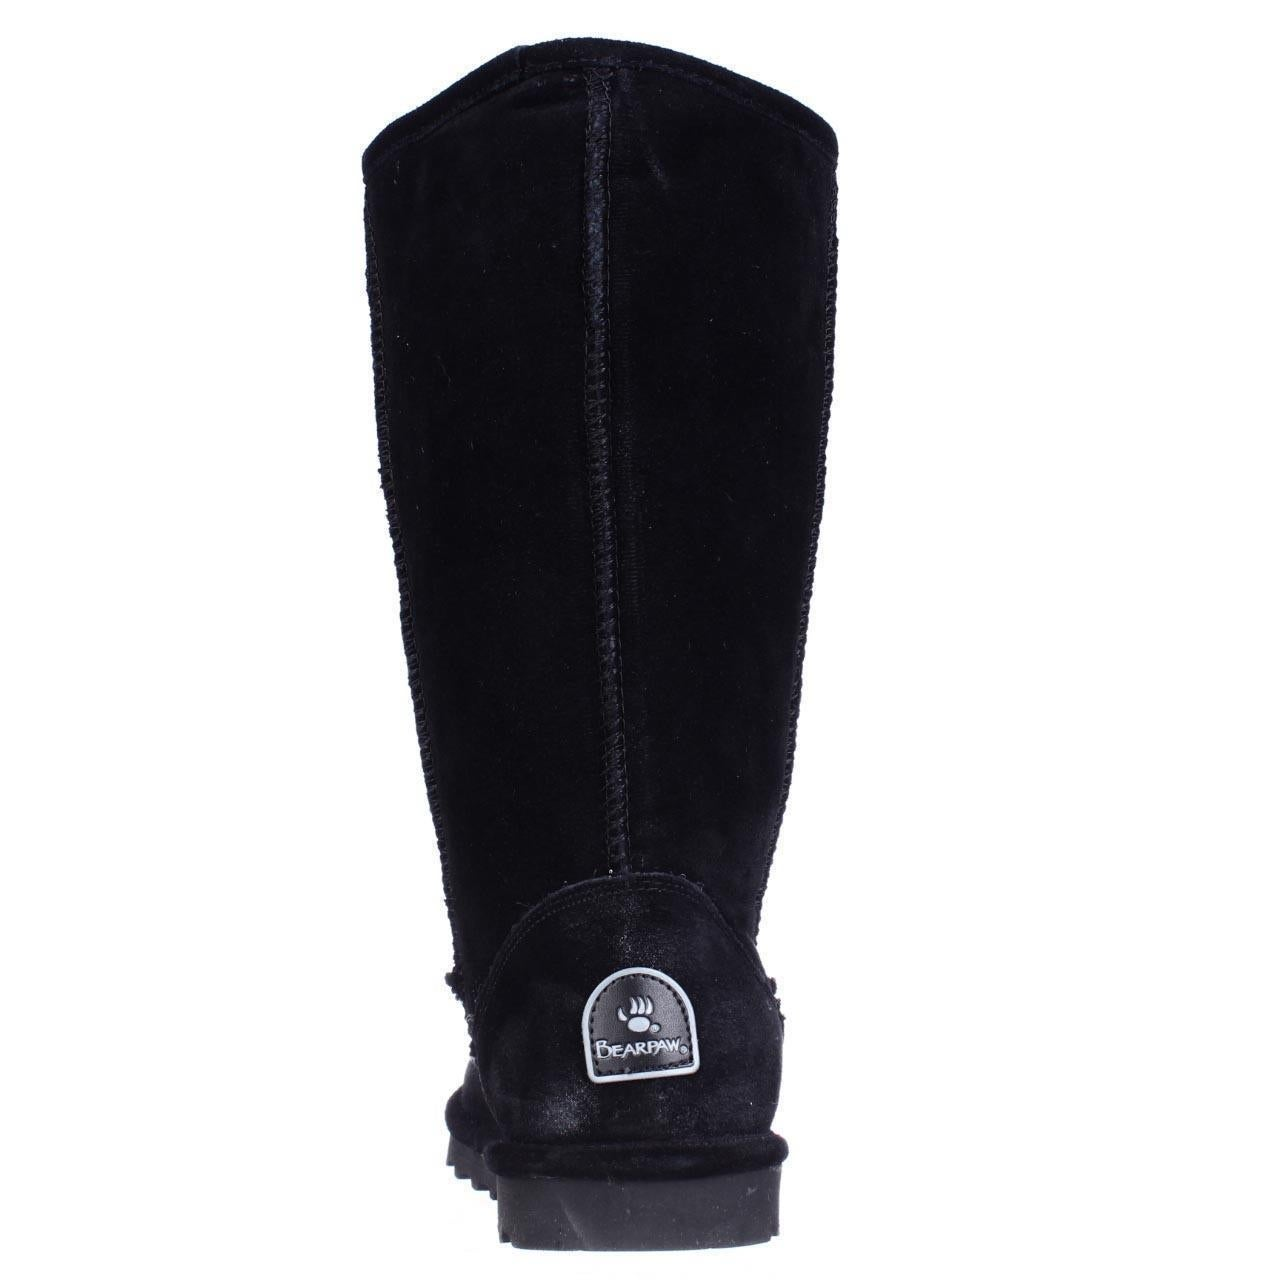 baf61b9eb Shop Bearpaw Elle Tall Shearling Lined Water Resistant Winter Boots, Black  - Free Shipping Today - Overstock.com - 14081292 - Knee-High Boots - 5 US /  36 EU ...